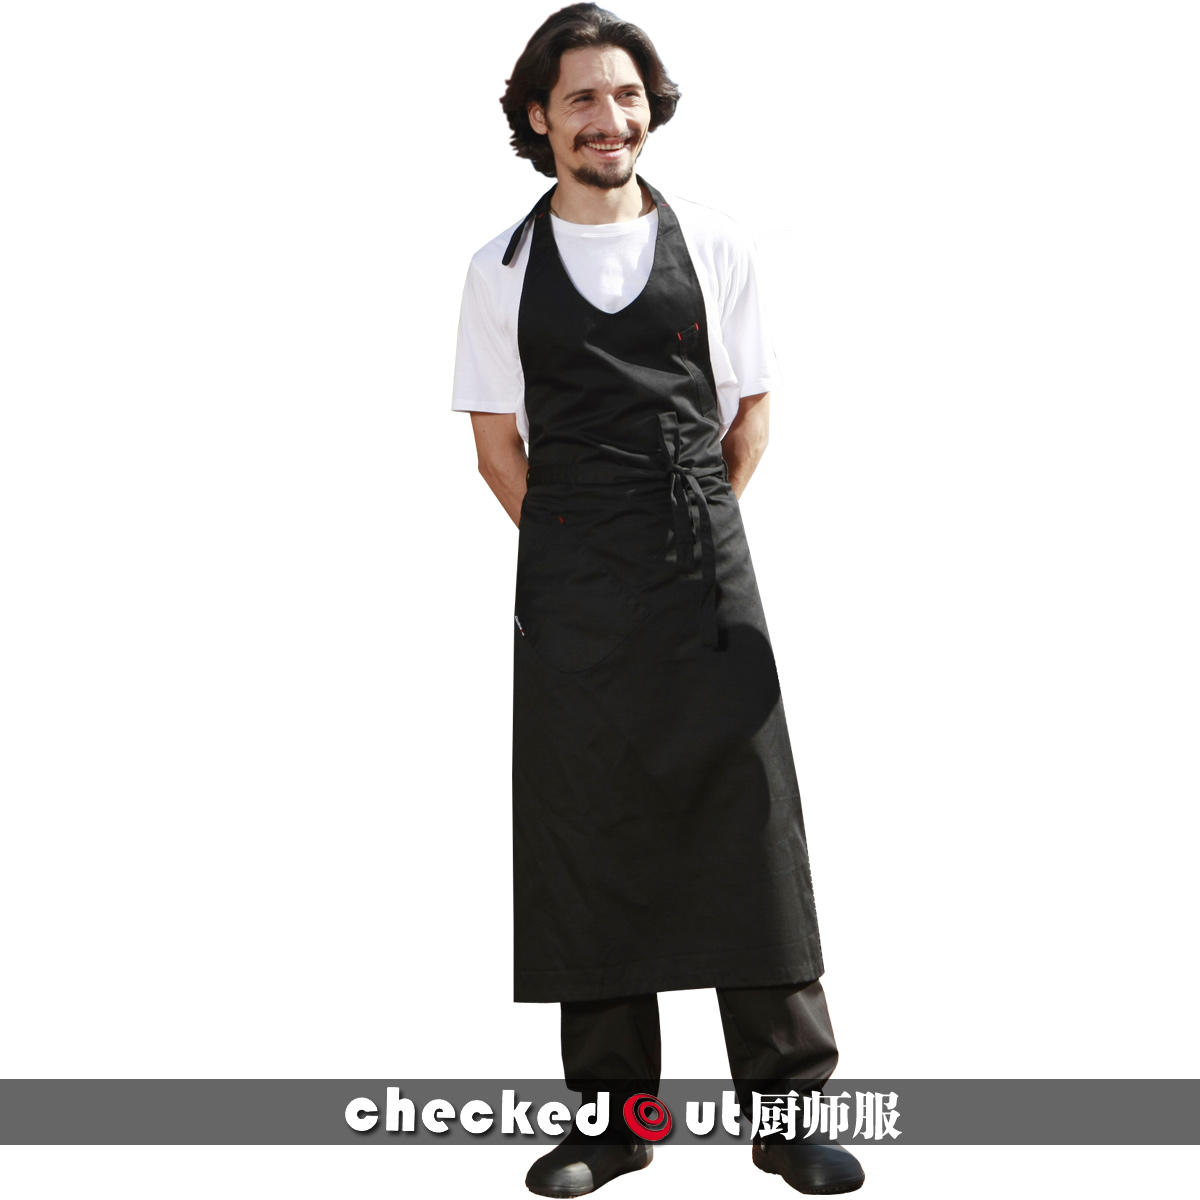 Checked Kitchen bar coffee shop service Korean fashion creative products work apron uniform package mail